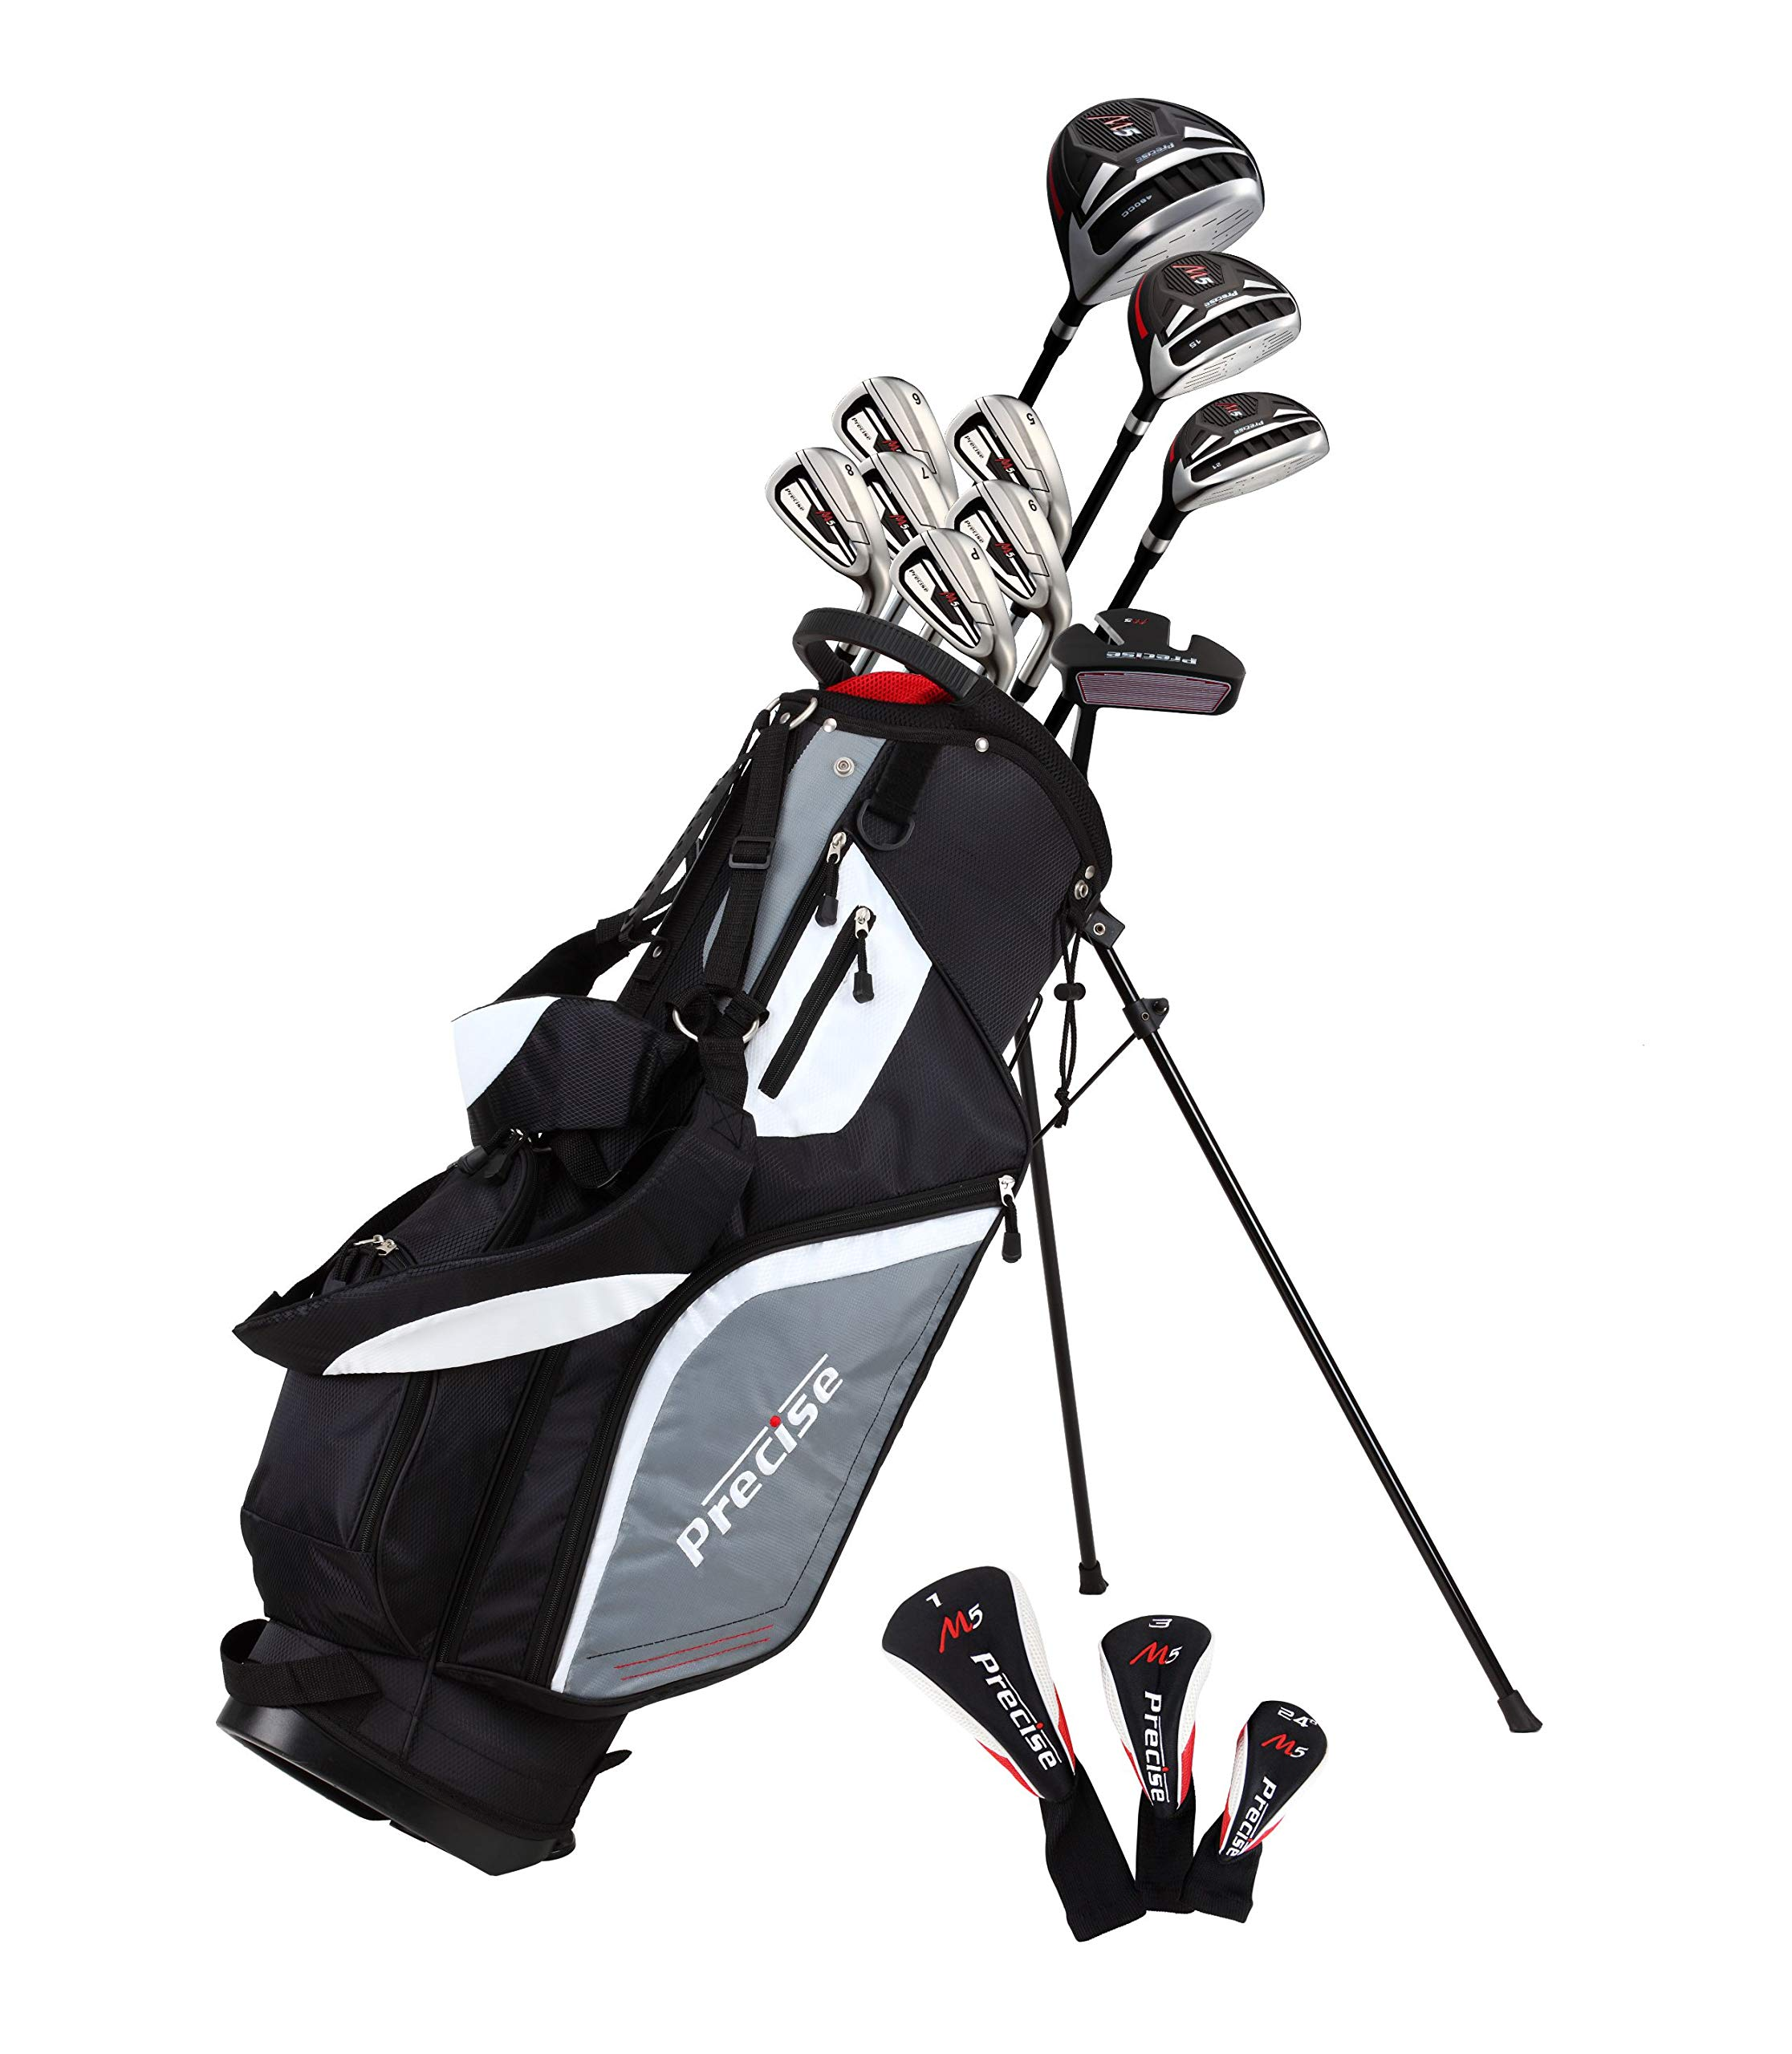 Top Line Men's  M5 Golf Club Set , Left Handed Only, Includes Driver, Wood, Hybrid, 5, 6, 7, 8, 9, PW Stainless Steel Irons with True Temper Steel Shaft, Putter, Stand Bag & 3 Headcovers by Precise